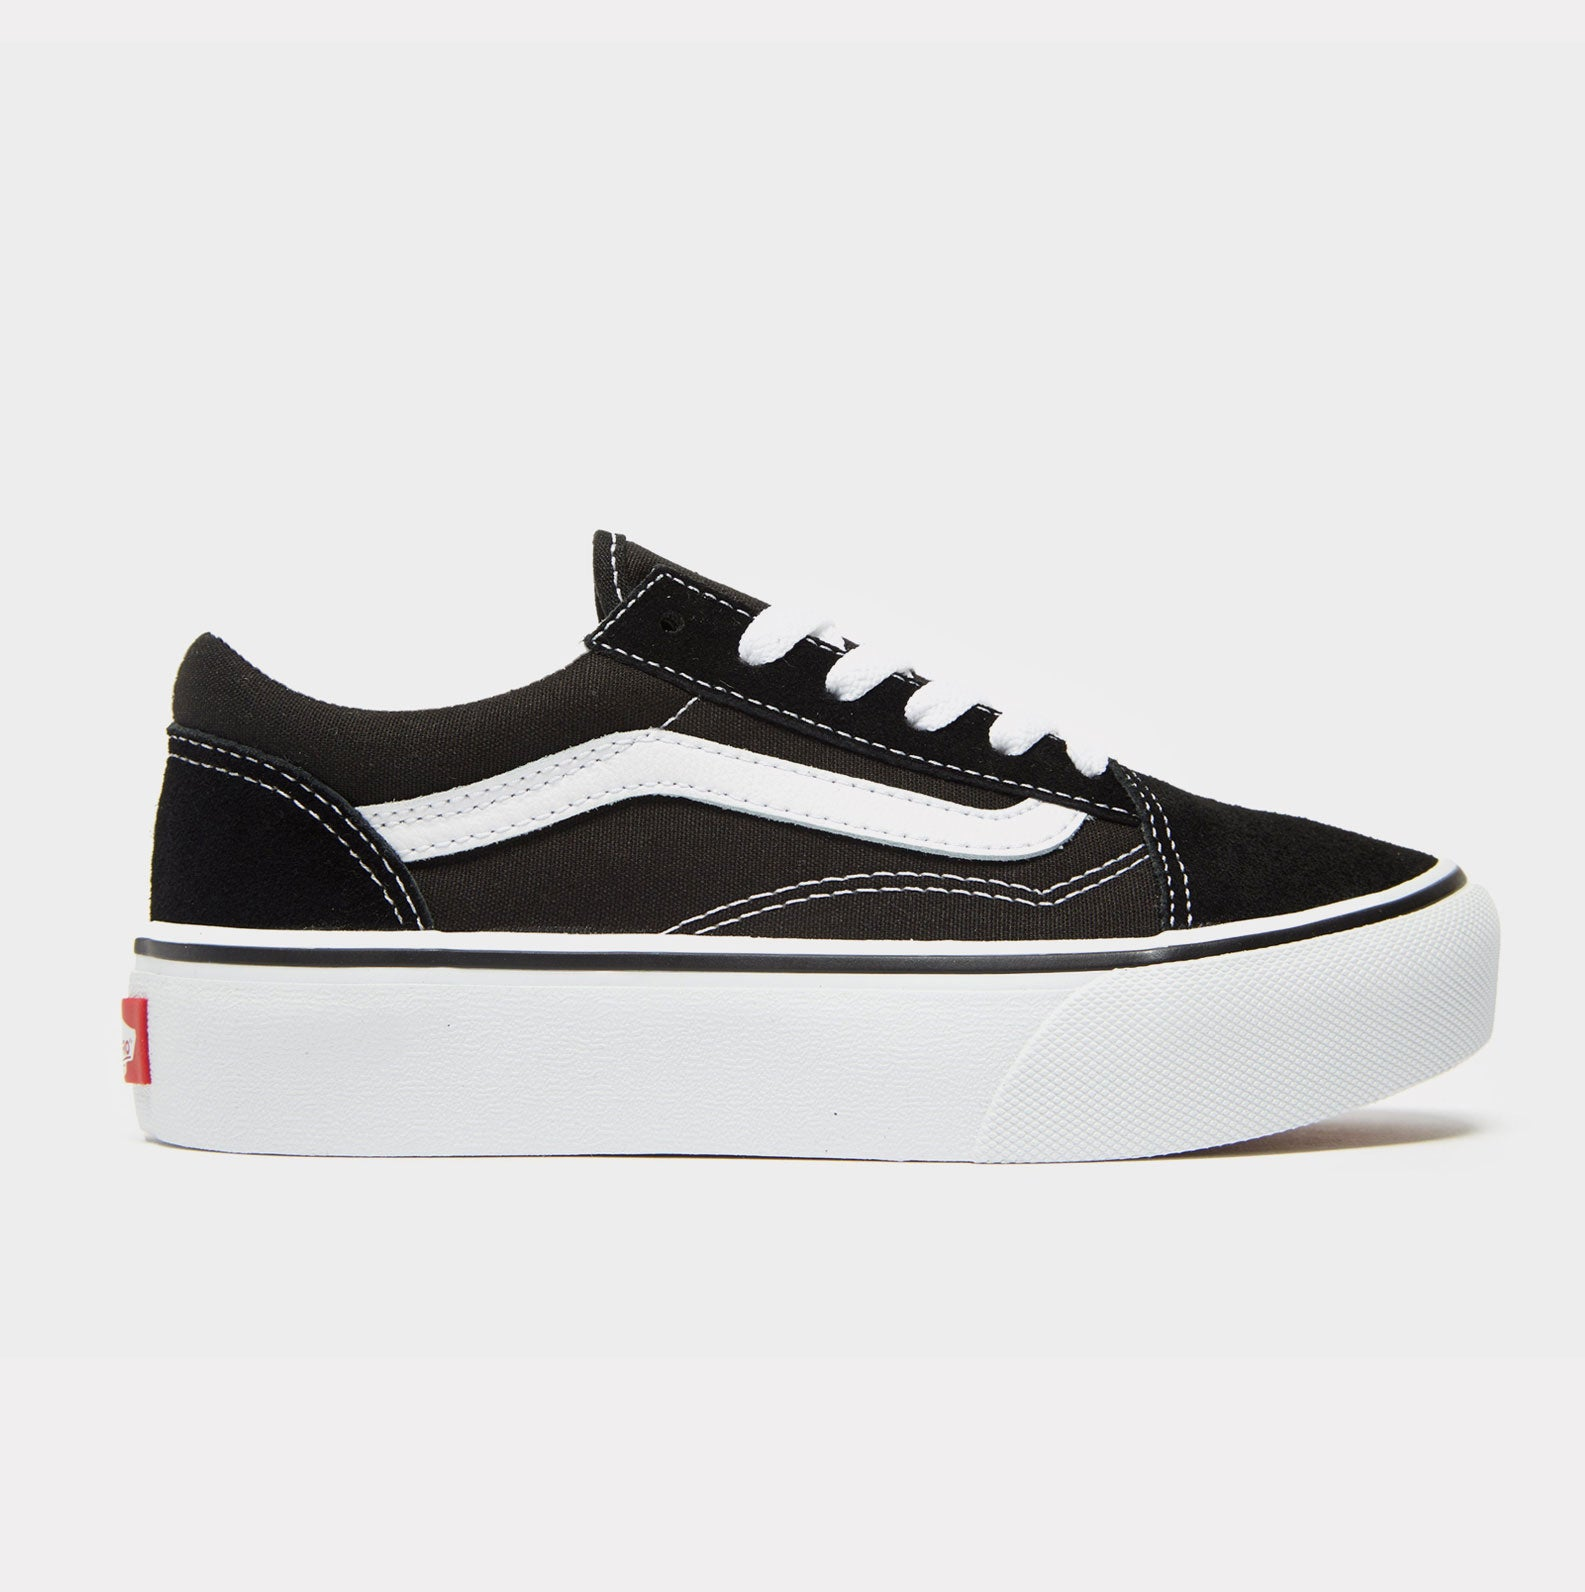 vans old skool platform 38.5